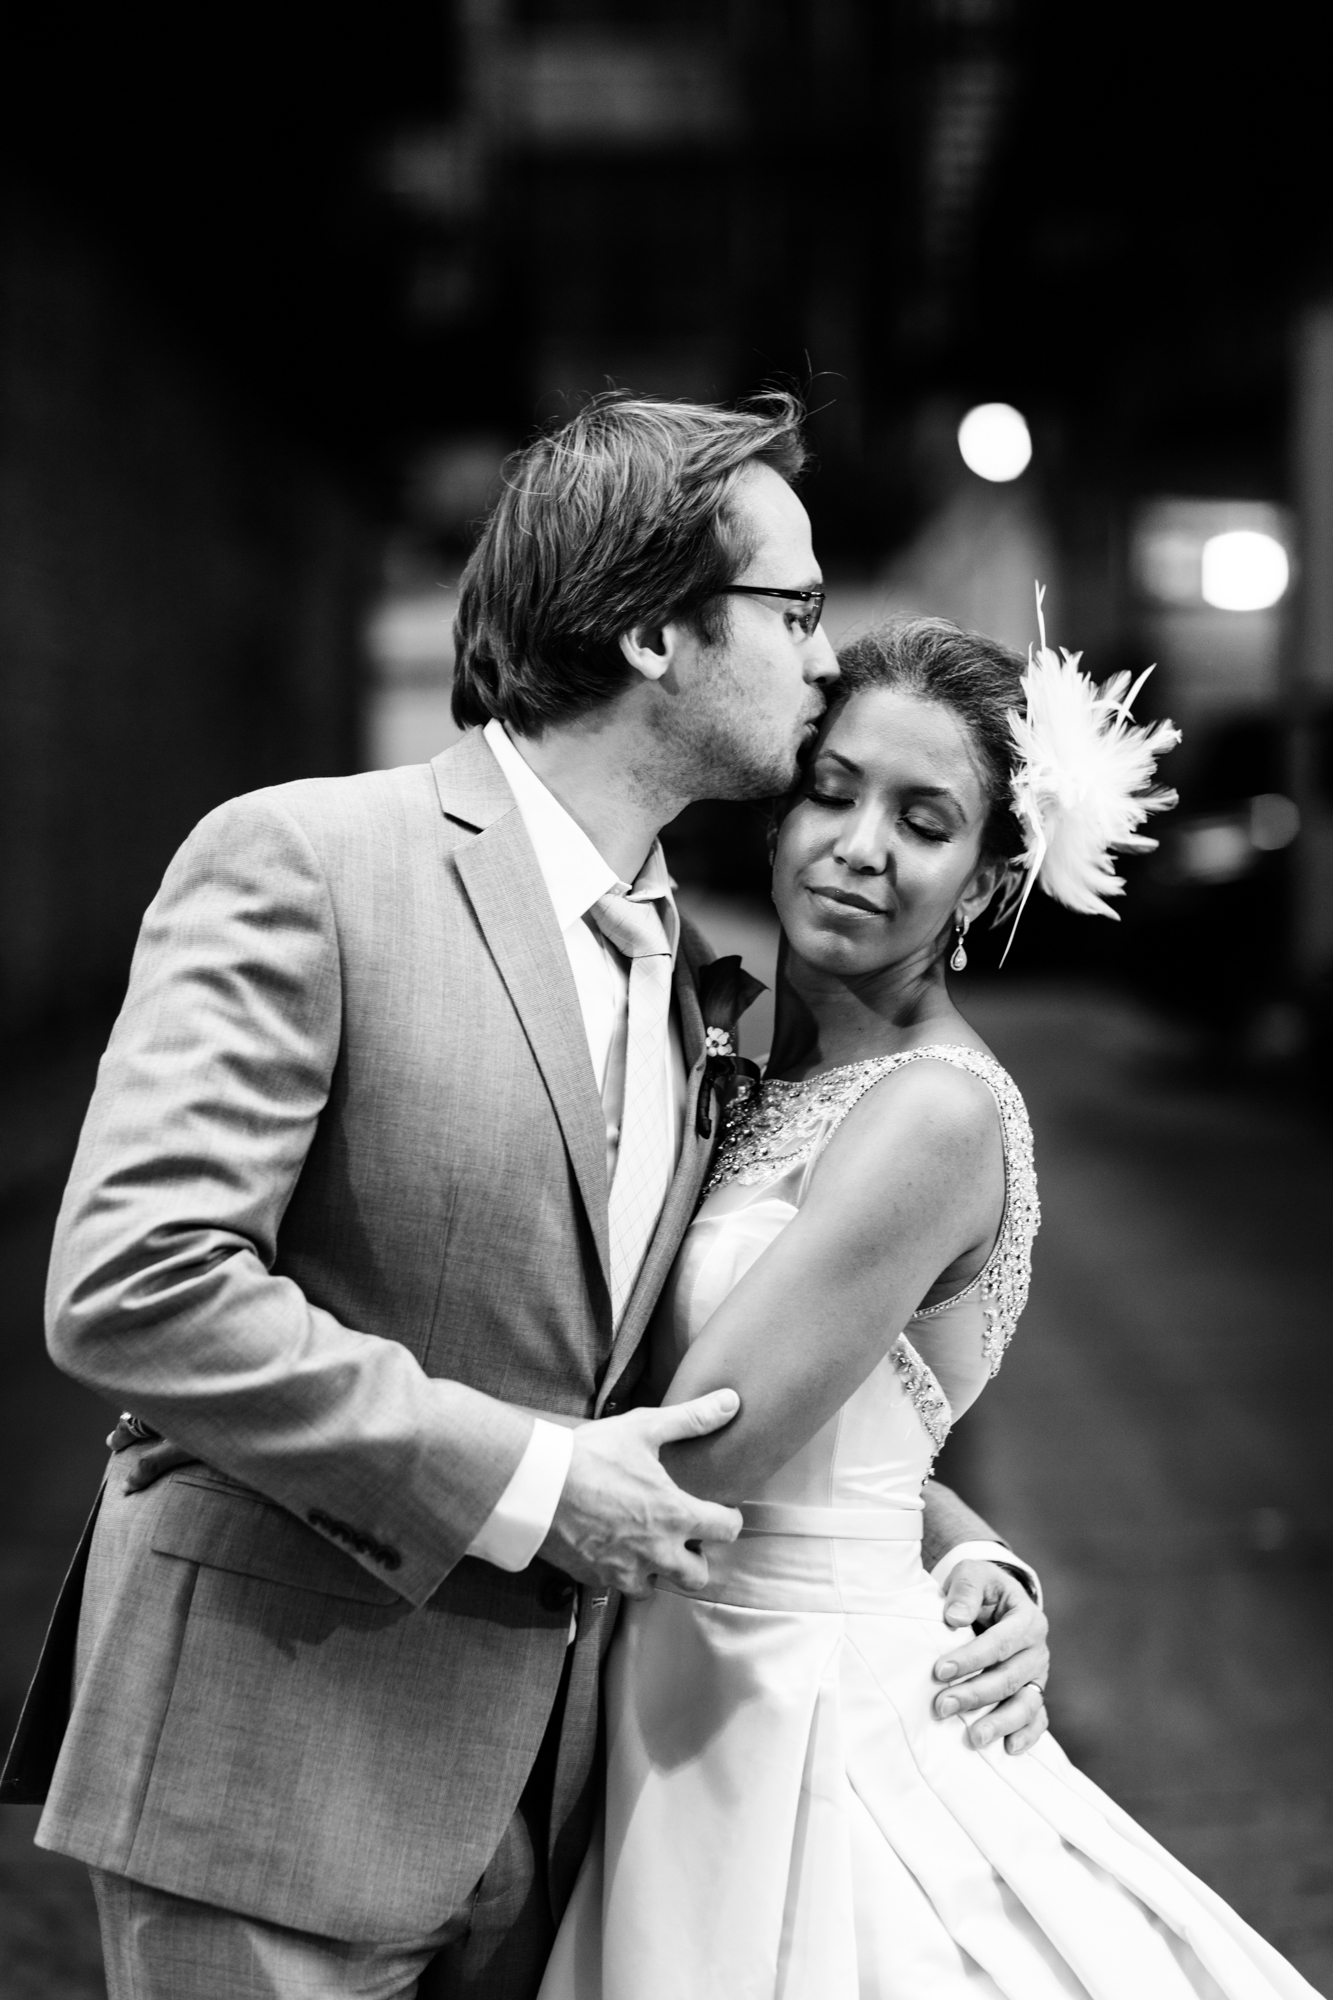 Portrait of bride and groom in downtown Chicago